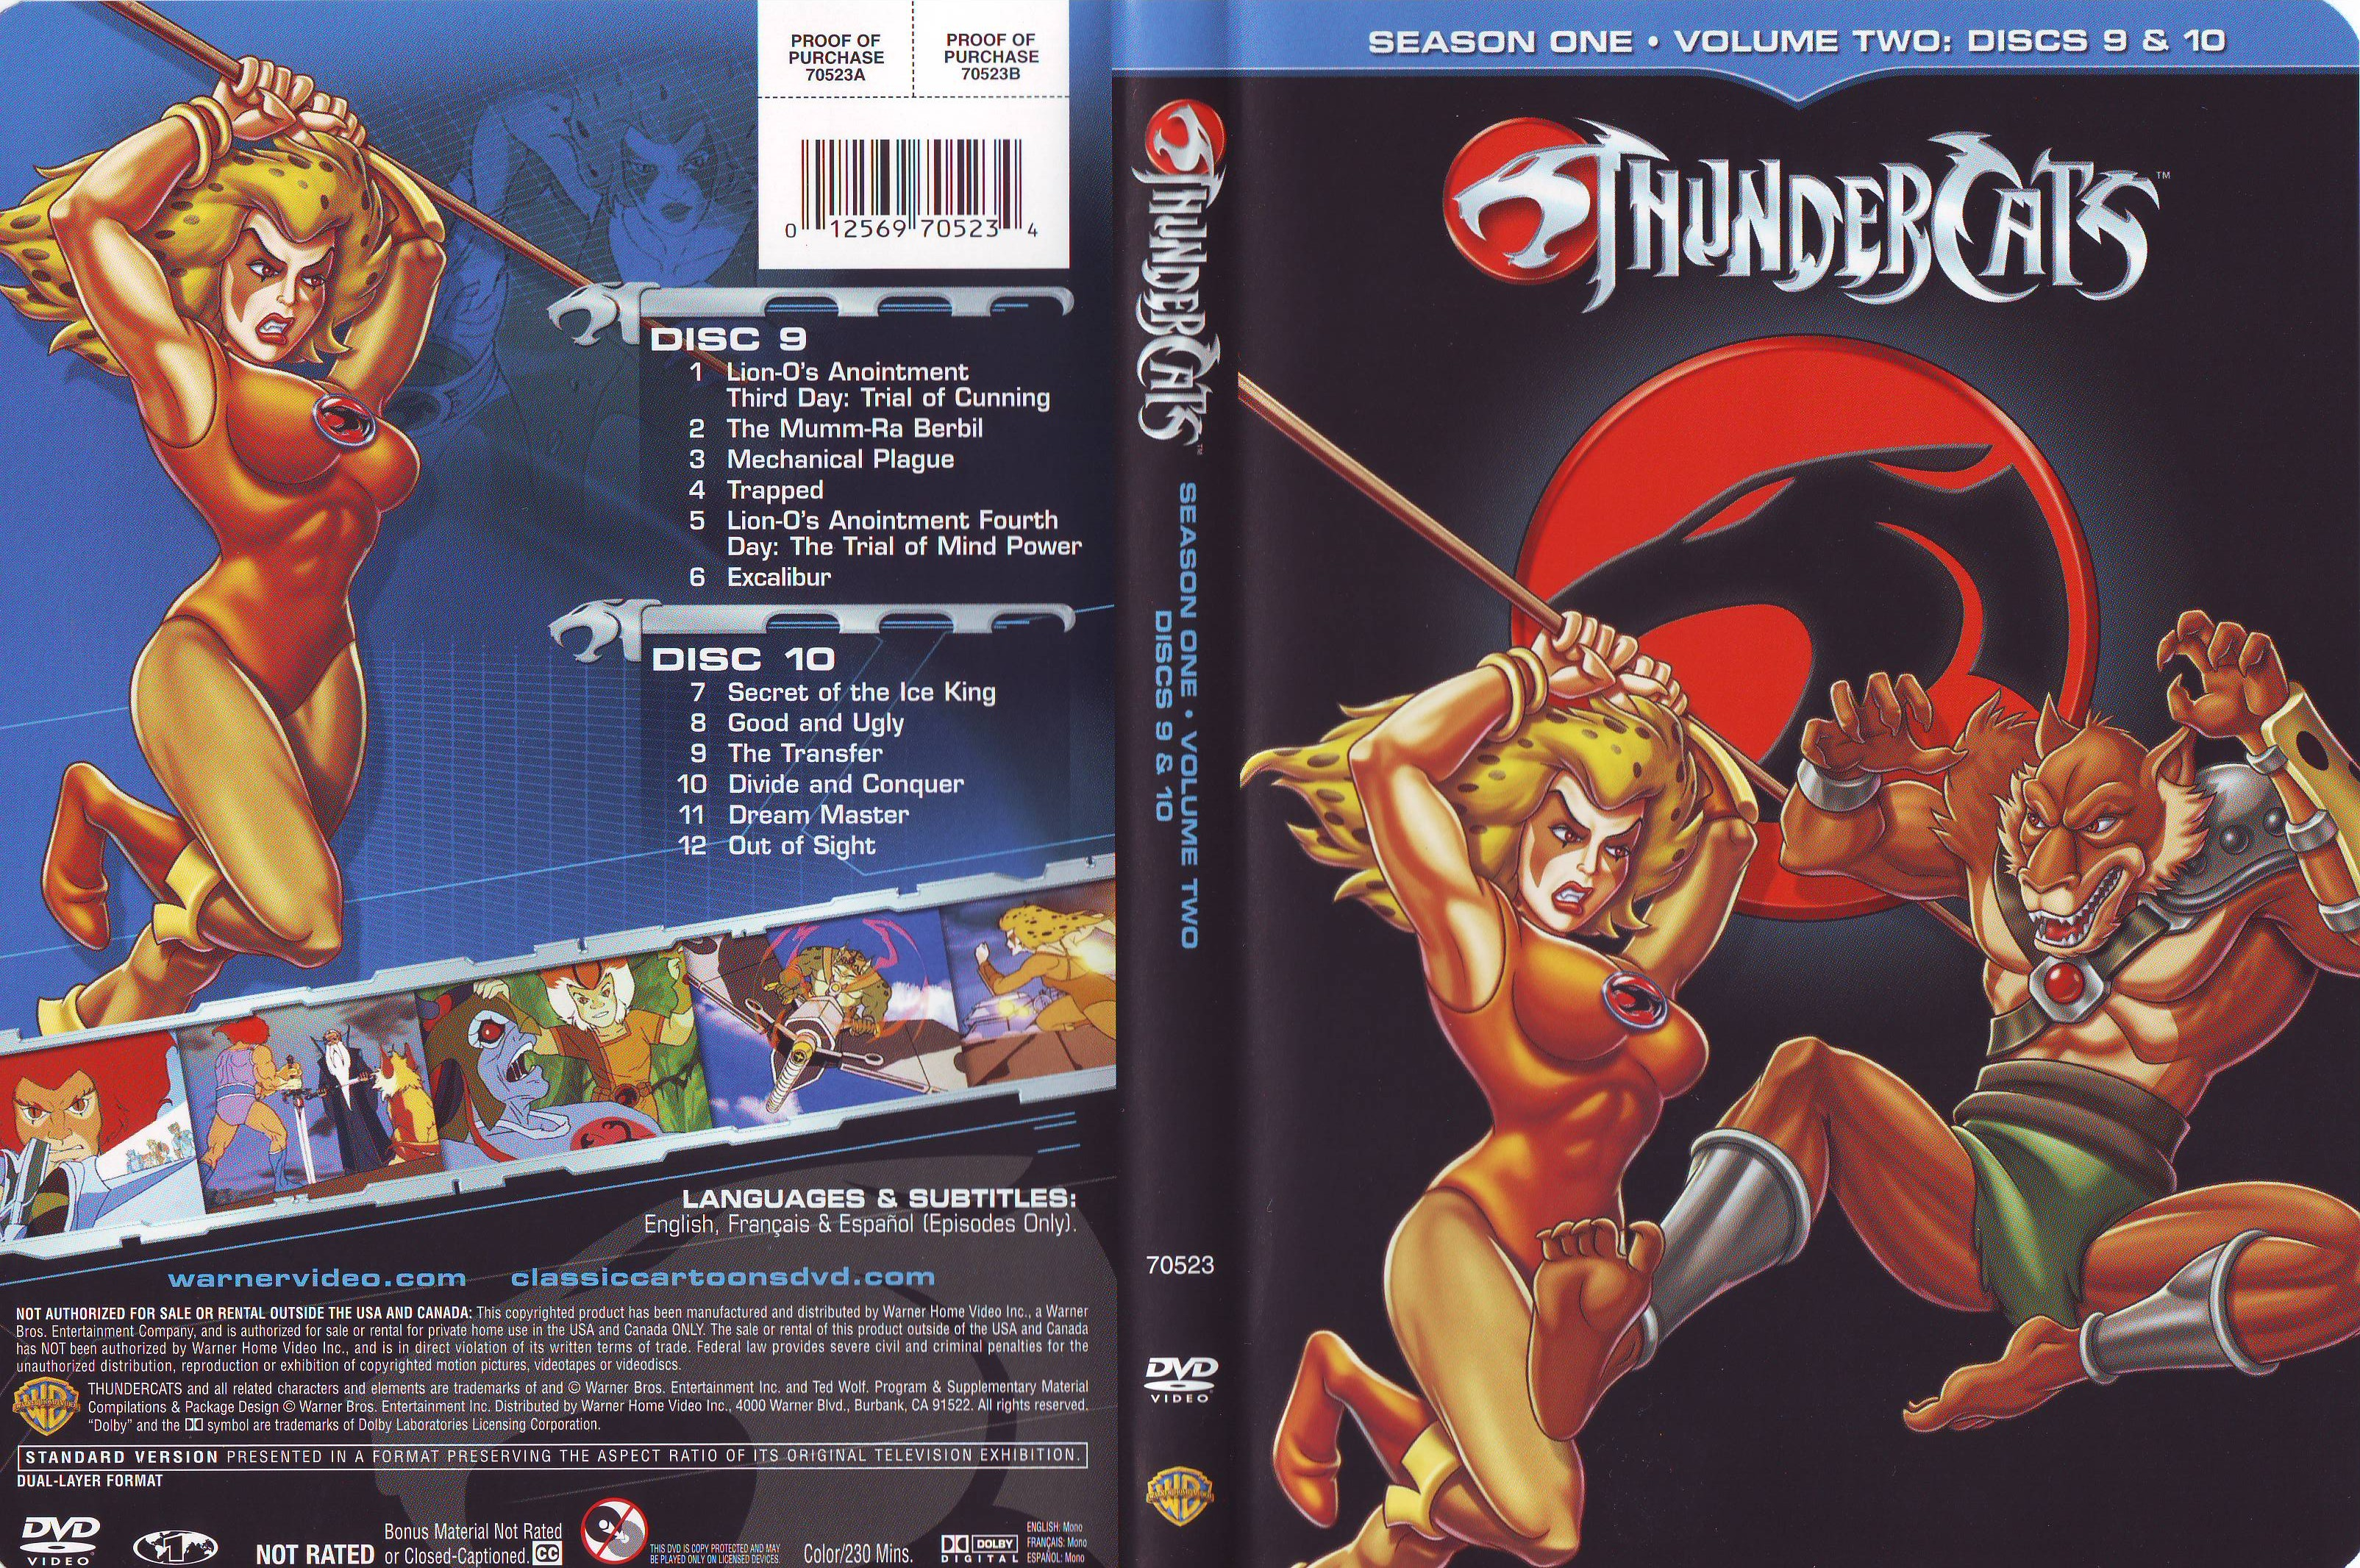 COVERS BOX SK ::: Thundercats - Season 01 - Volumen 02 - Discos 09